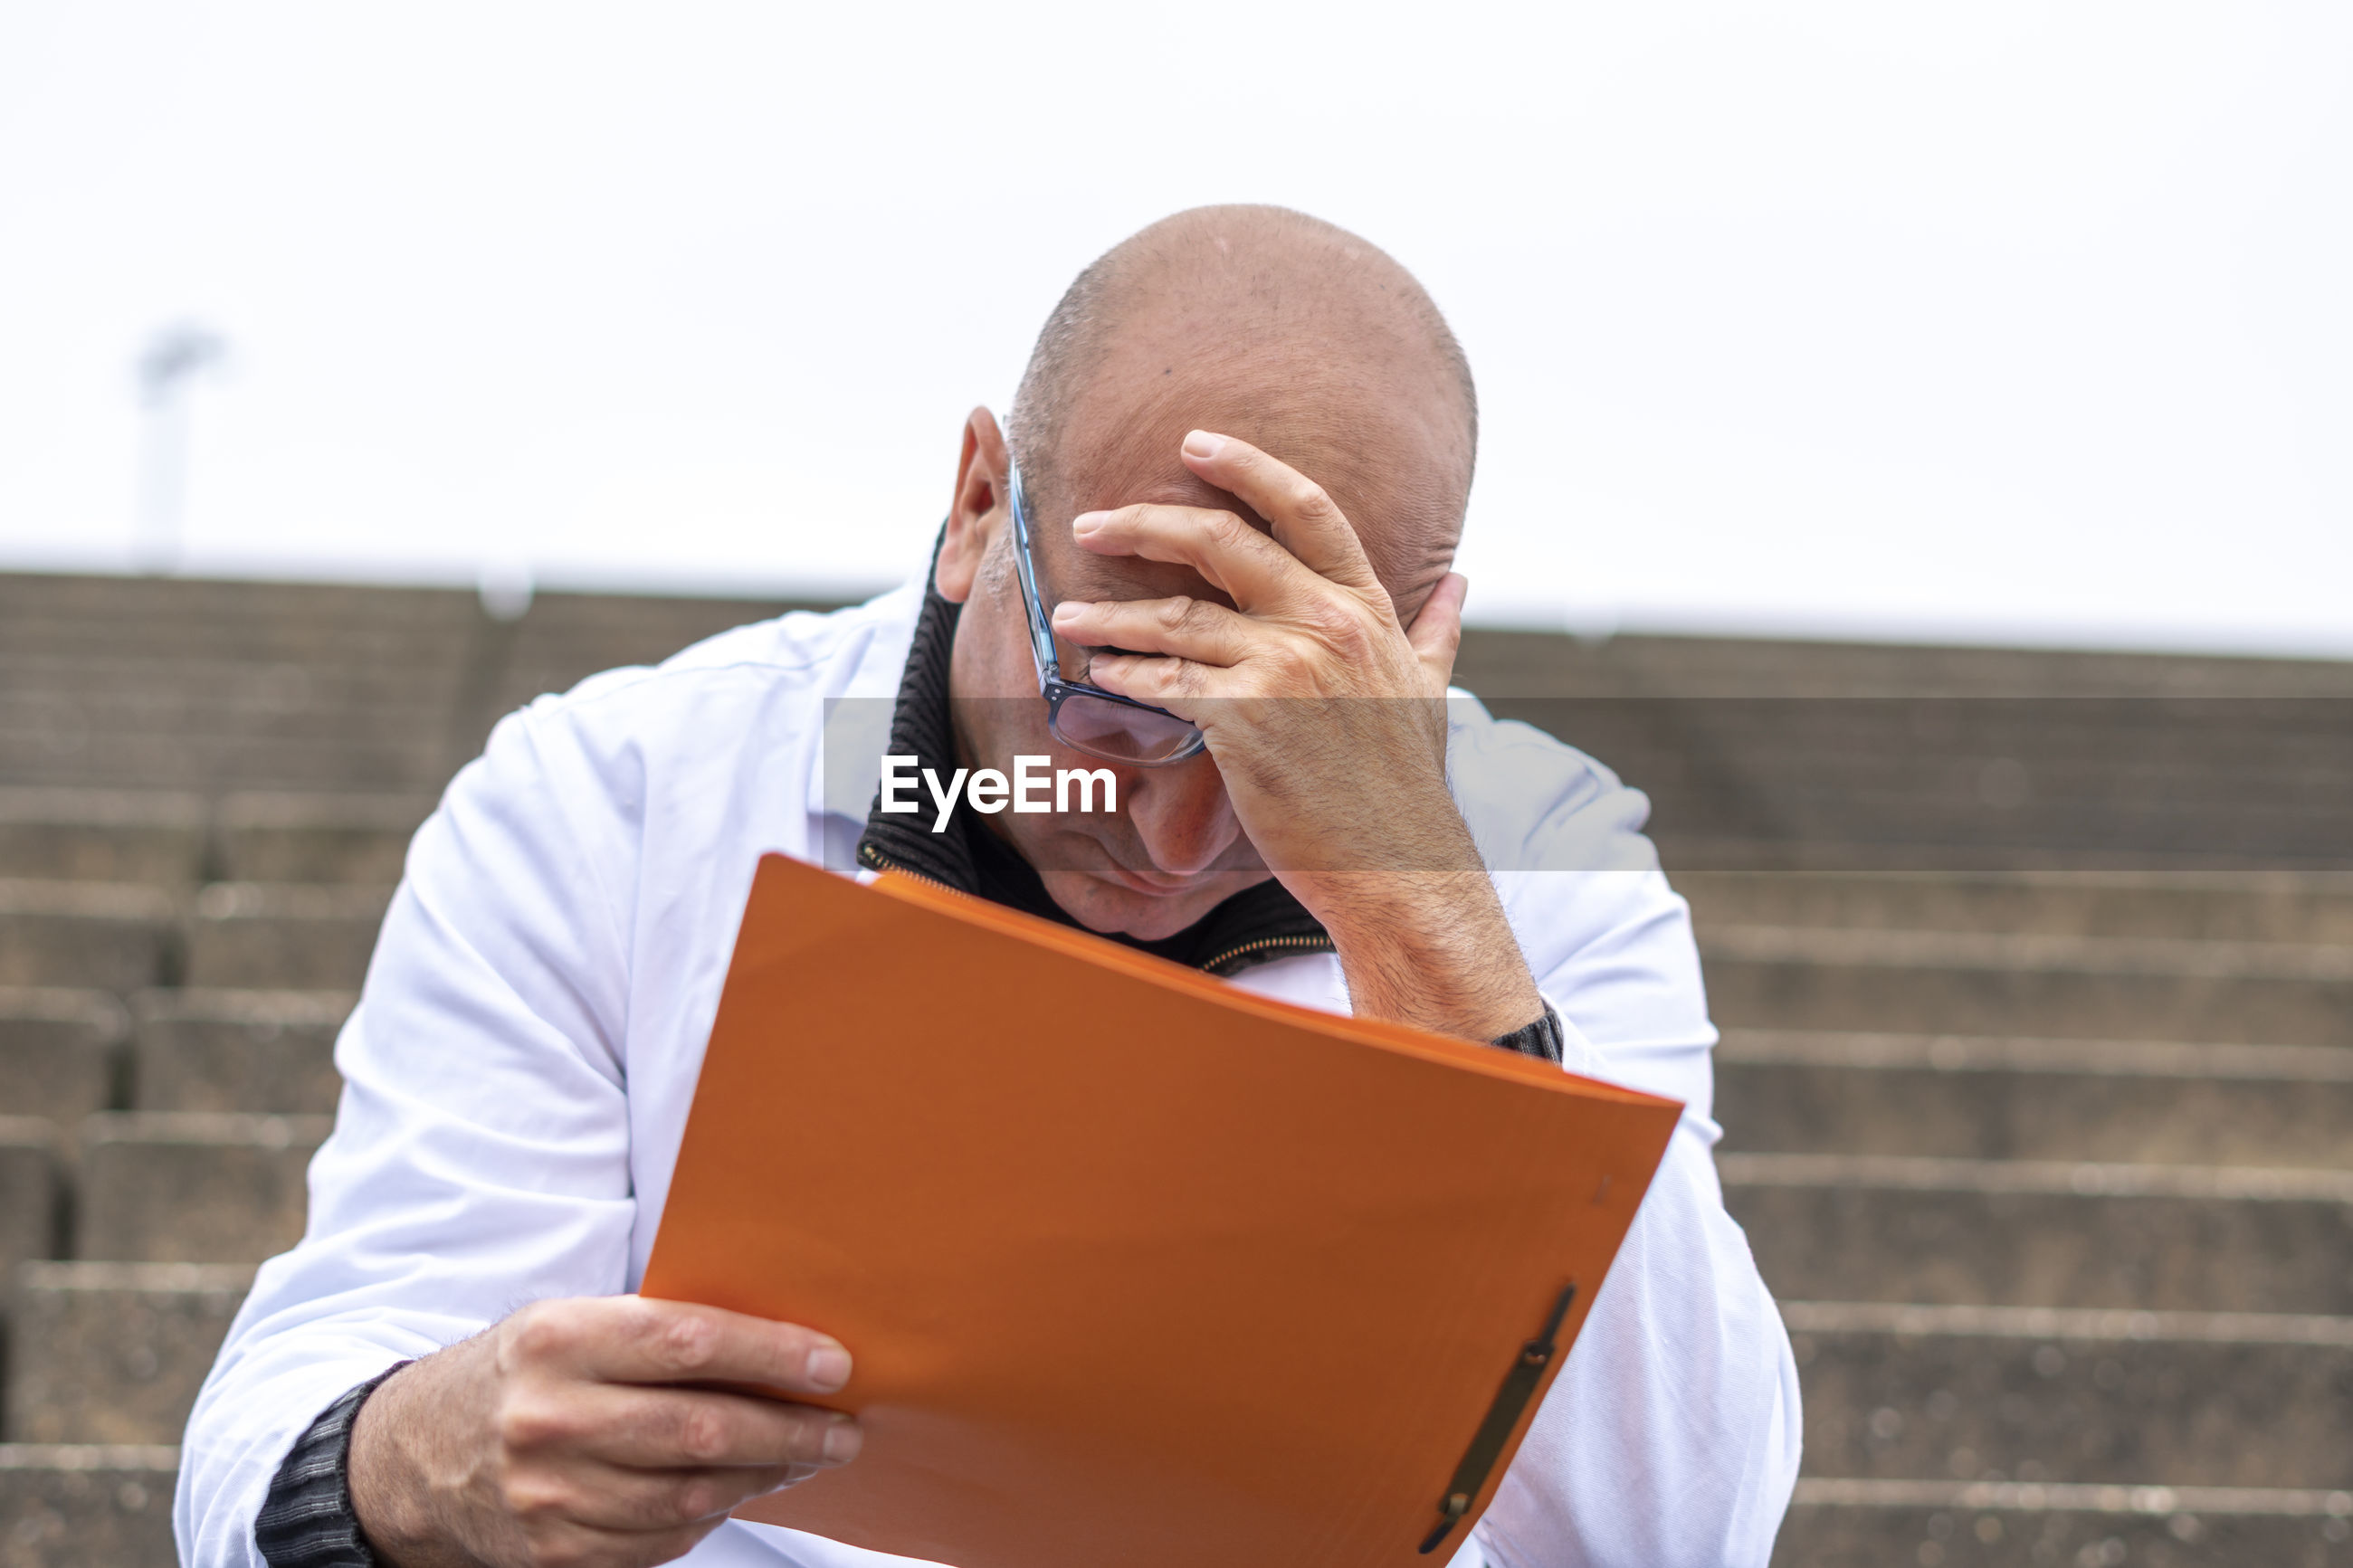 Stressed doctor holding file while sitting outdoors